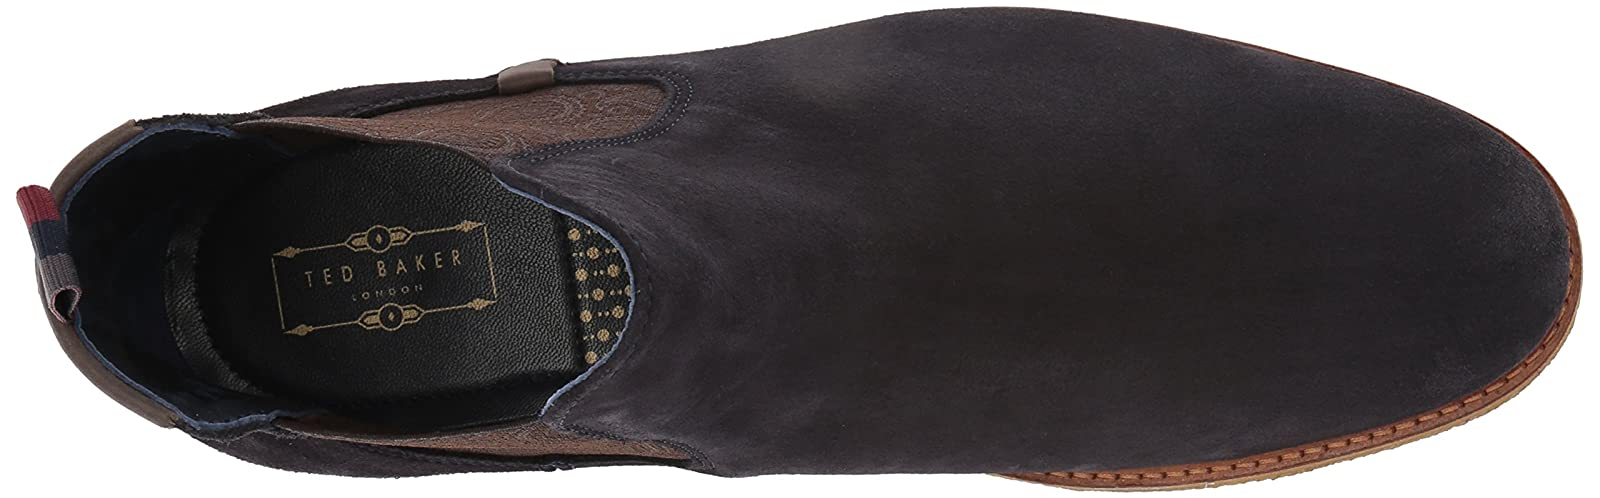 Ted Baker Men's Bronzo Chelsea Boot 12 M US - 8